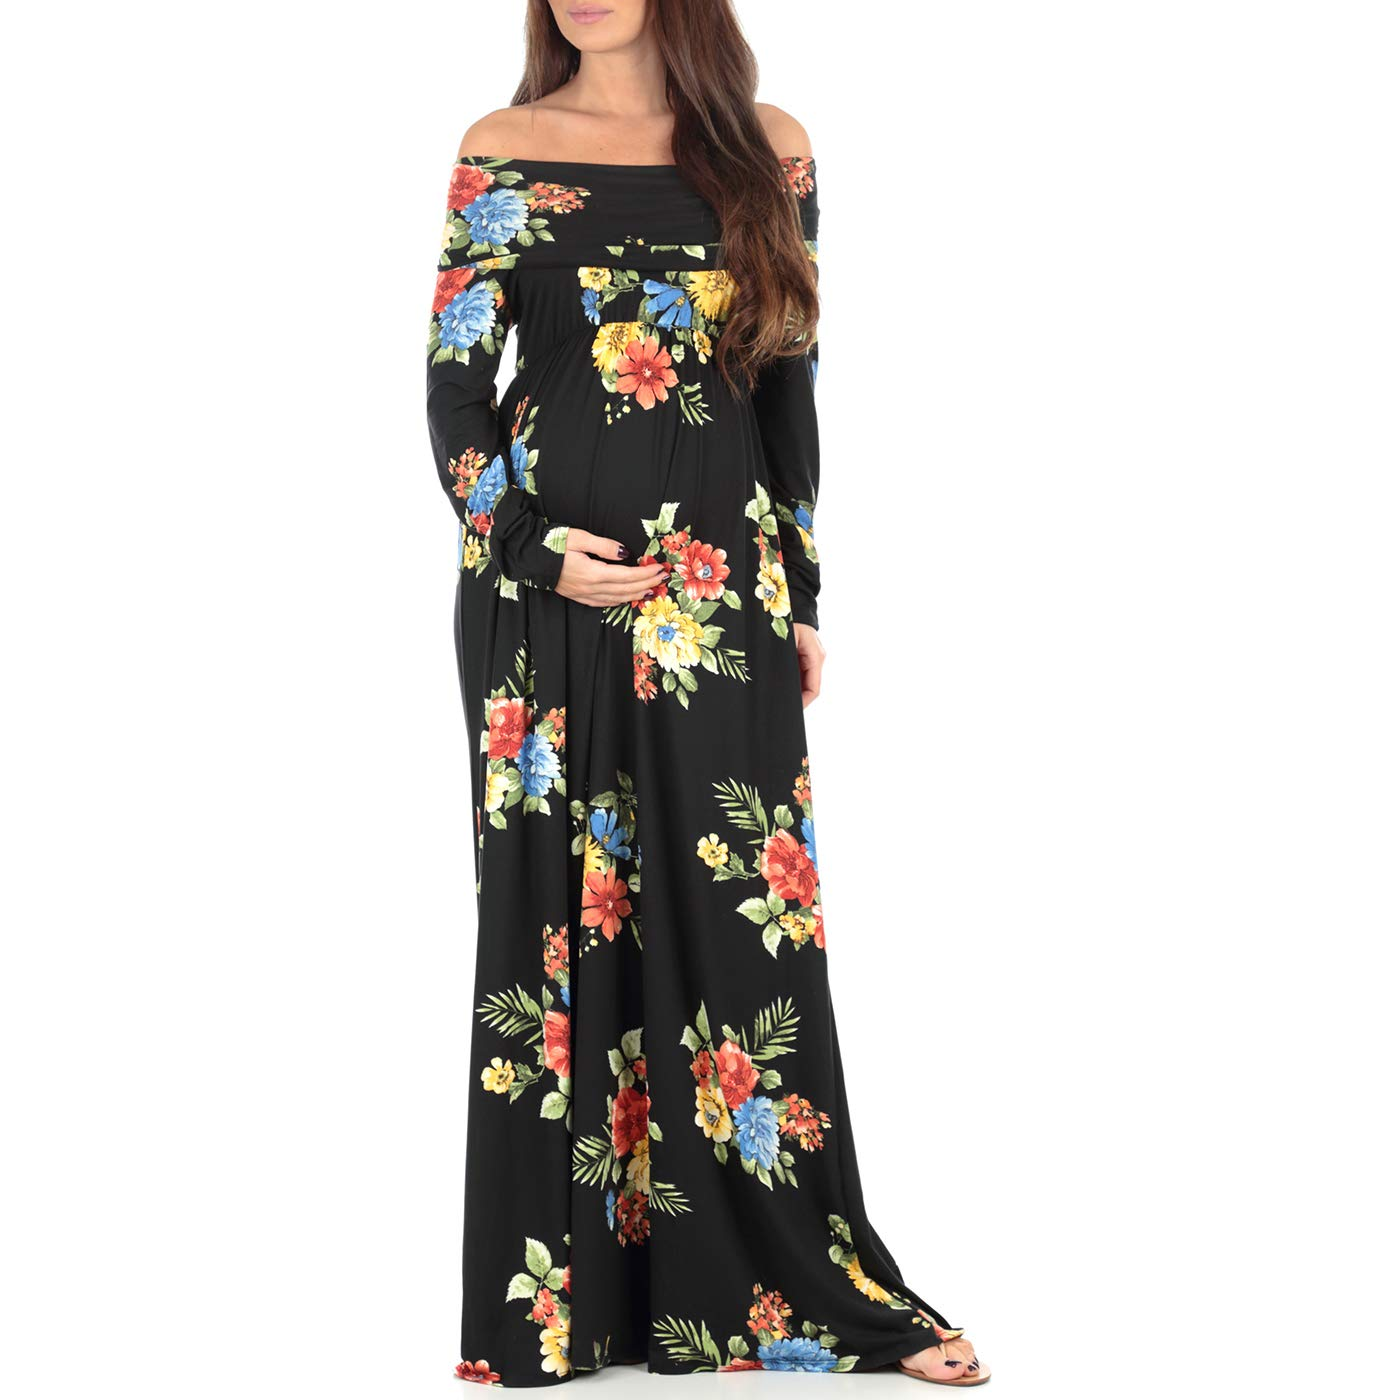 c560b0b00cf8 Women s Floral Over The Shoulder Ruched Maternity and Nursing Dress by Mother  Bee - Made in USA at Amazon Women s Clothing store